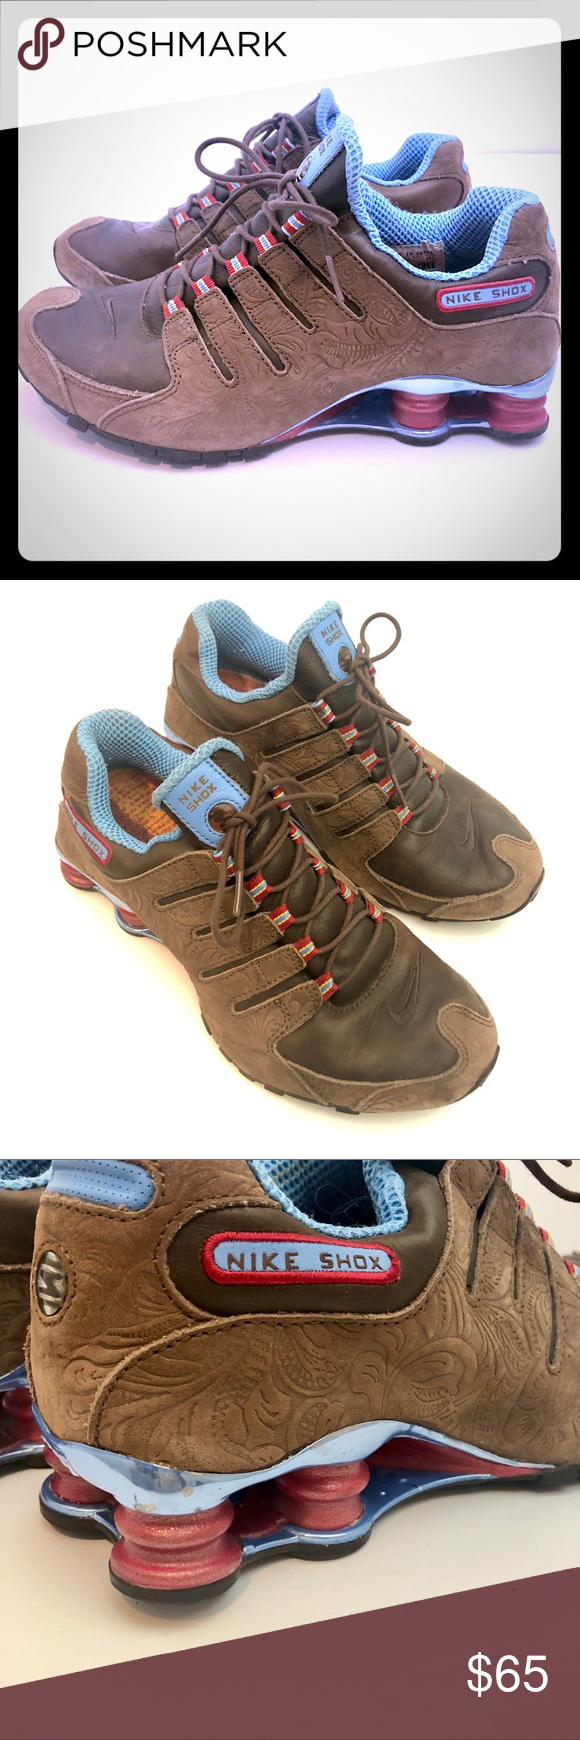 Rare Nike Shox - Embossed Suede and